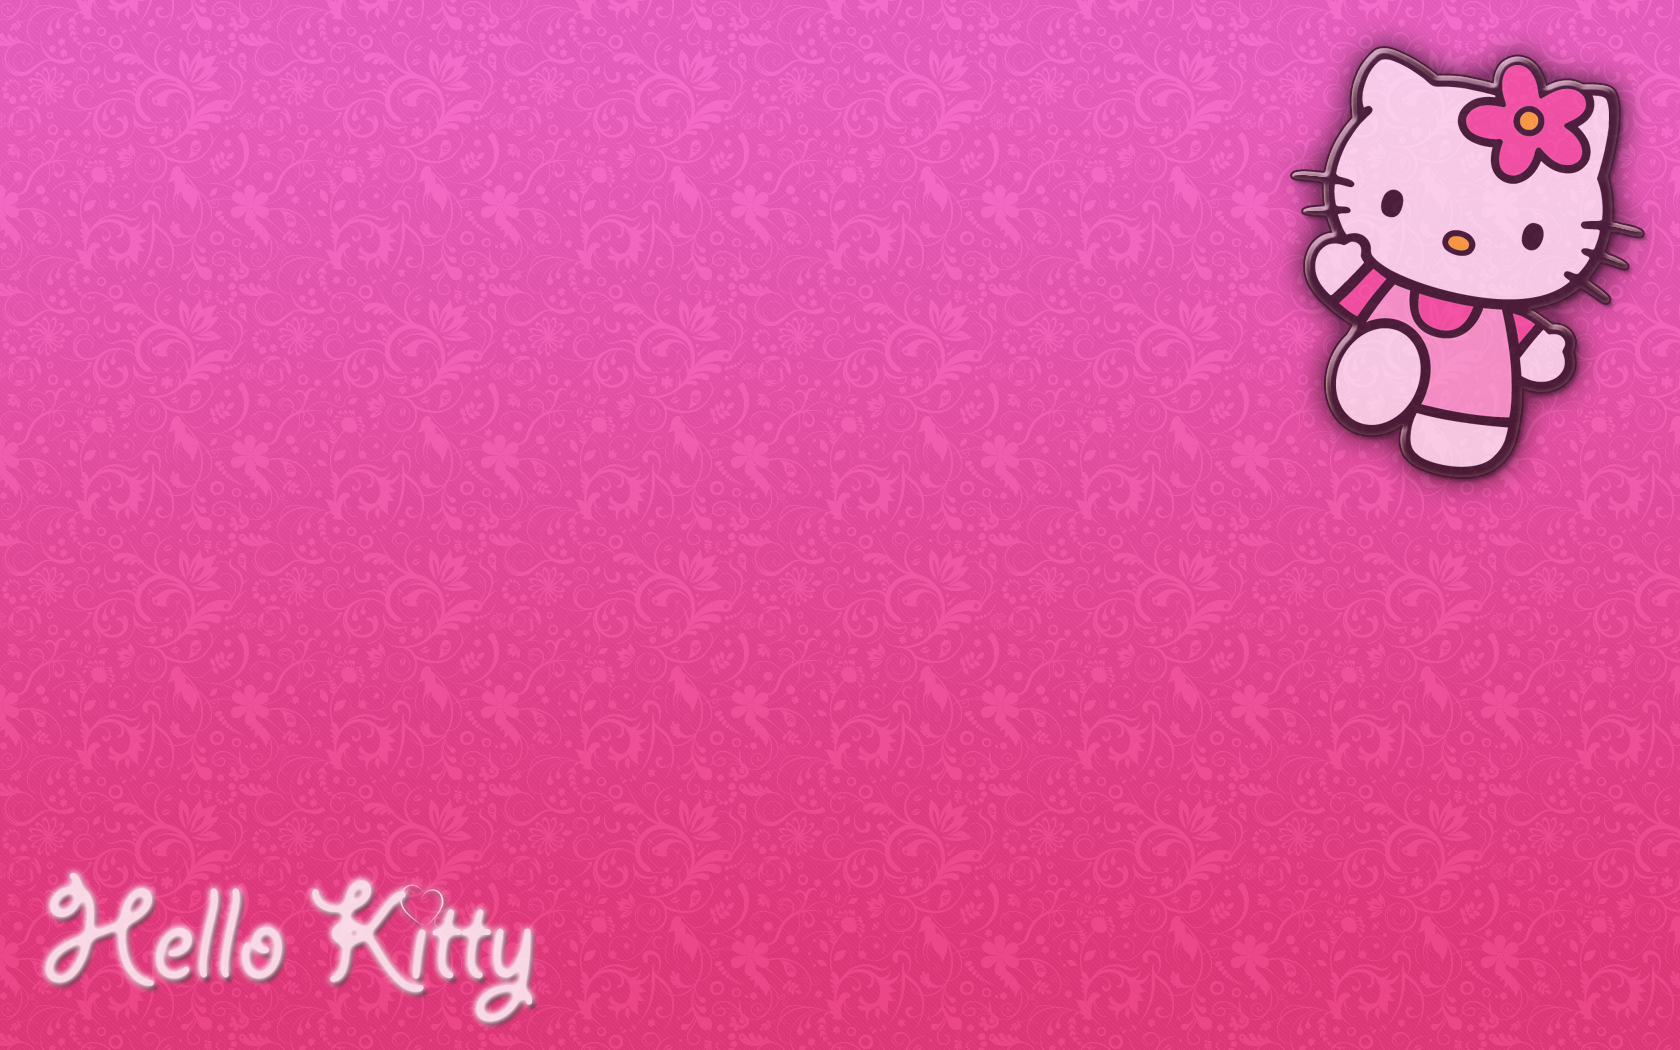 Hello Kitty Photos | BsnSCB Hello Kitty